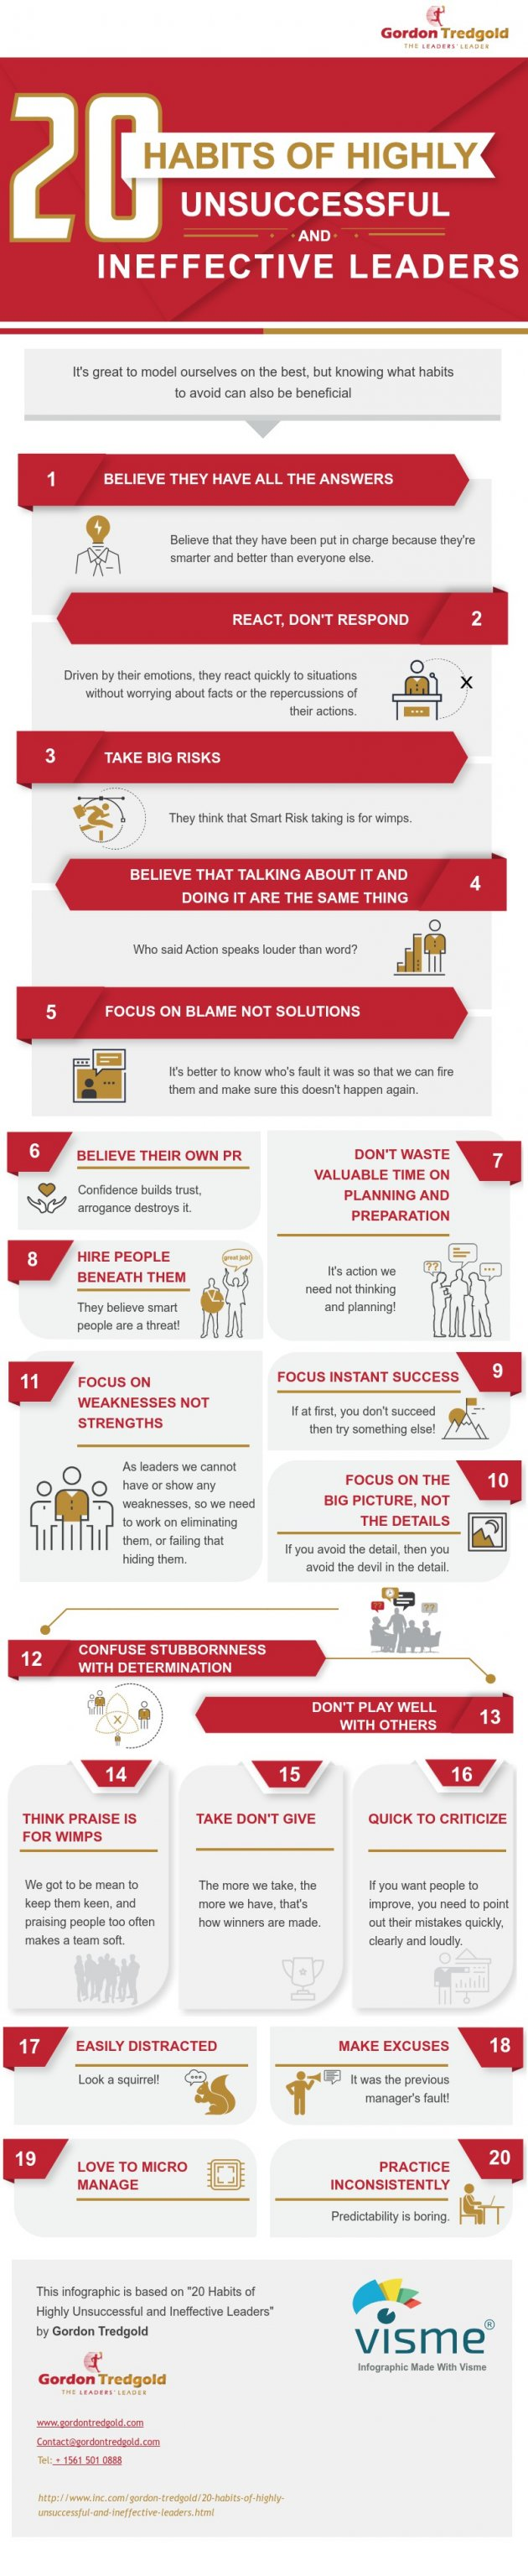 20-habits-of-highly-unsuccessful-and-ineffective-leaders-1_35614